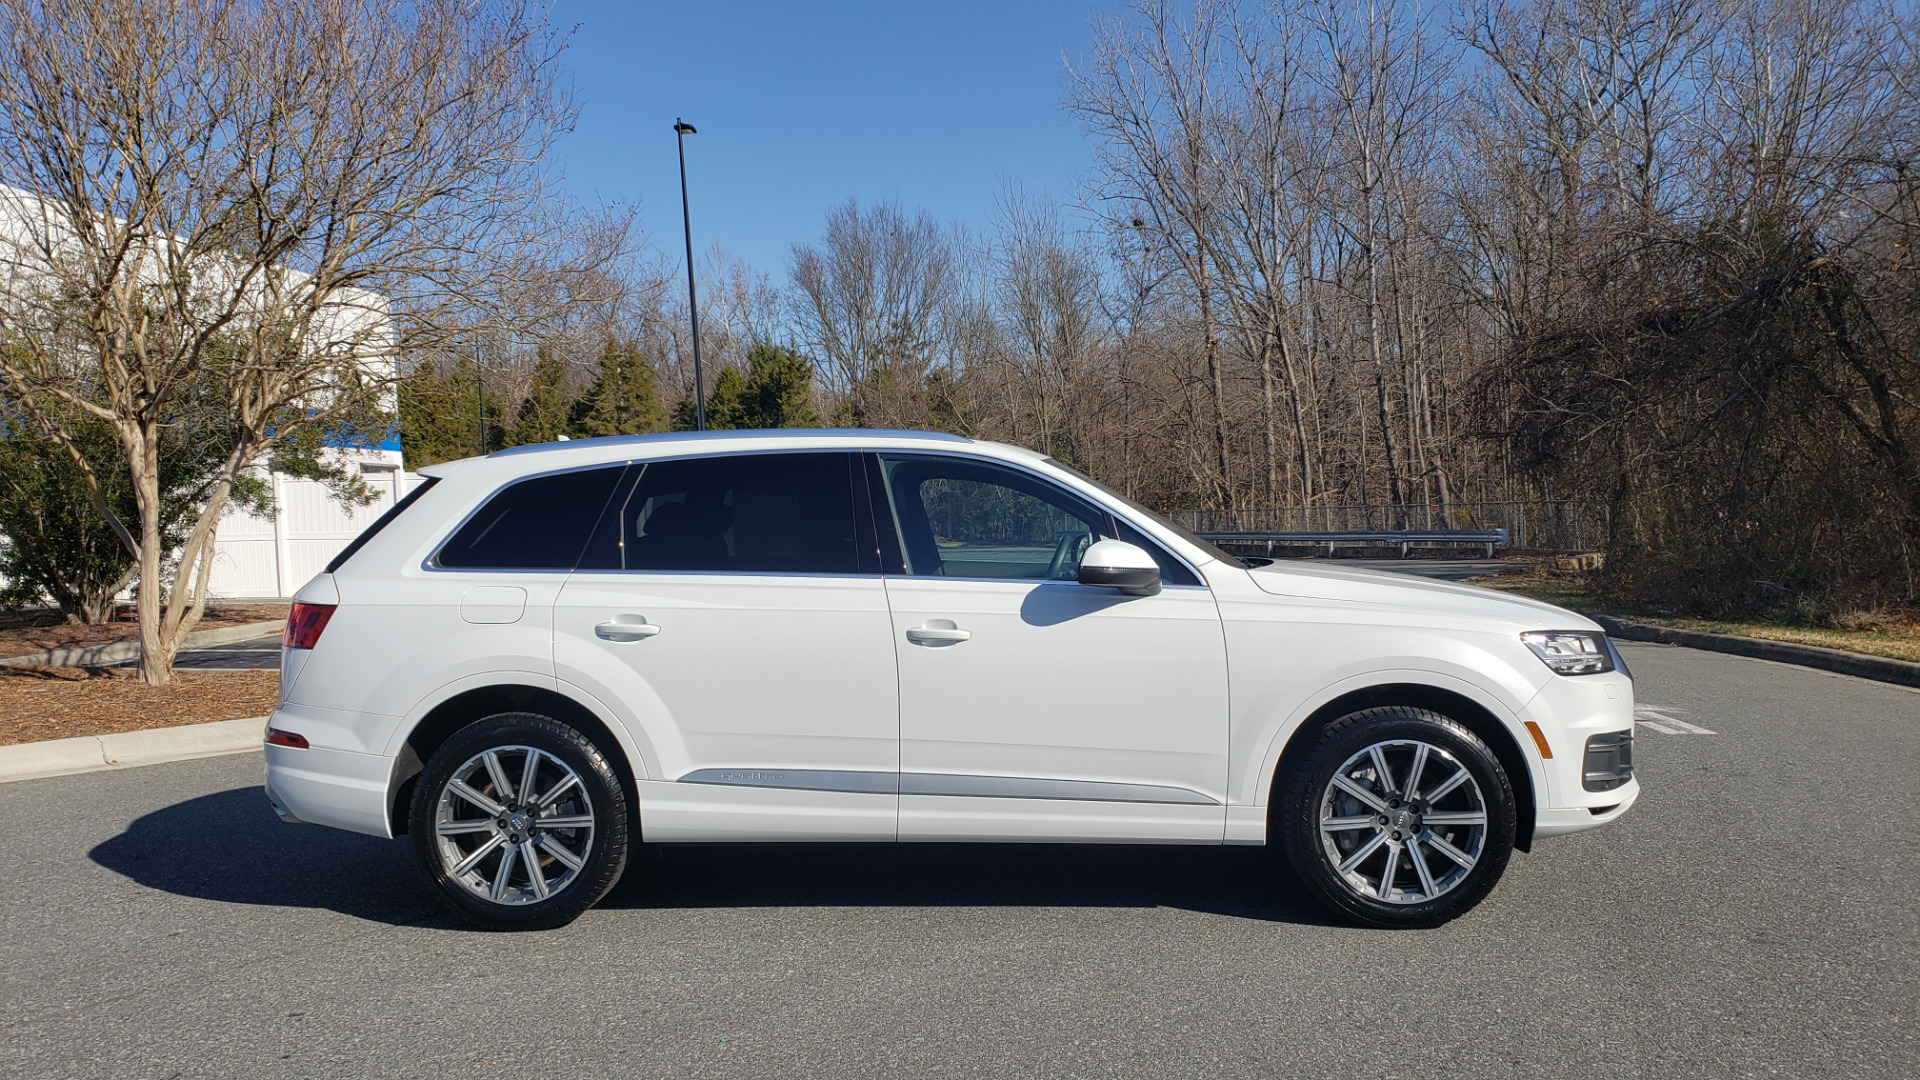 Used 2017 Audi Q7 PRESTIGE 3.0T / NAV / CLD WTHR / SUNROOF / REARVIEW for sale Sold at Formula Imports in Charlotte NC 28227 9